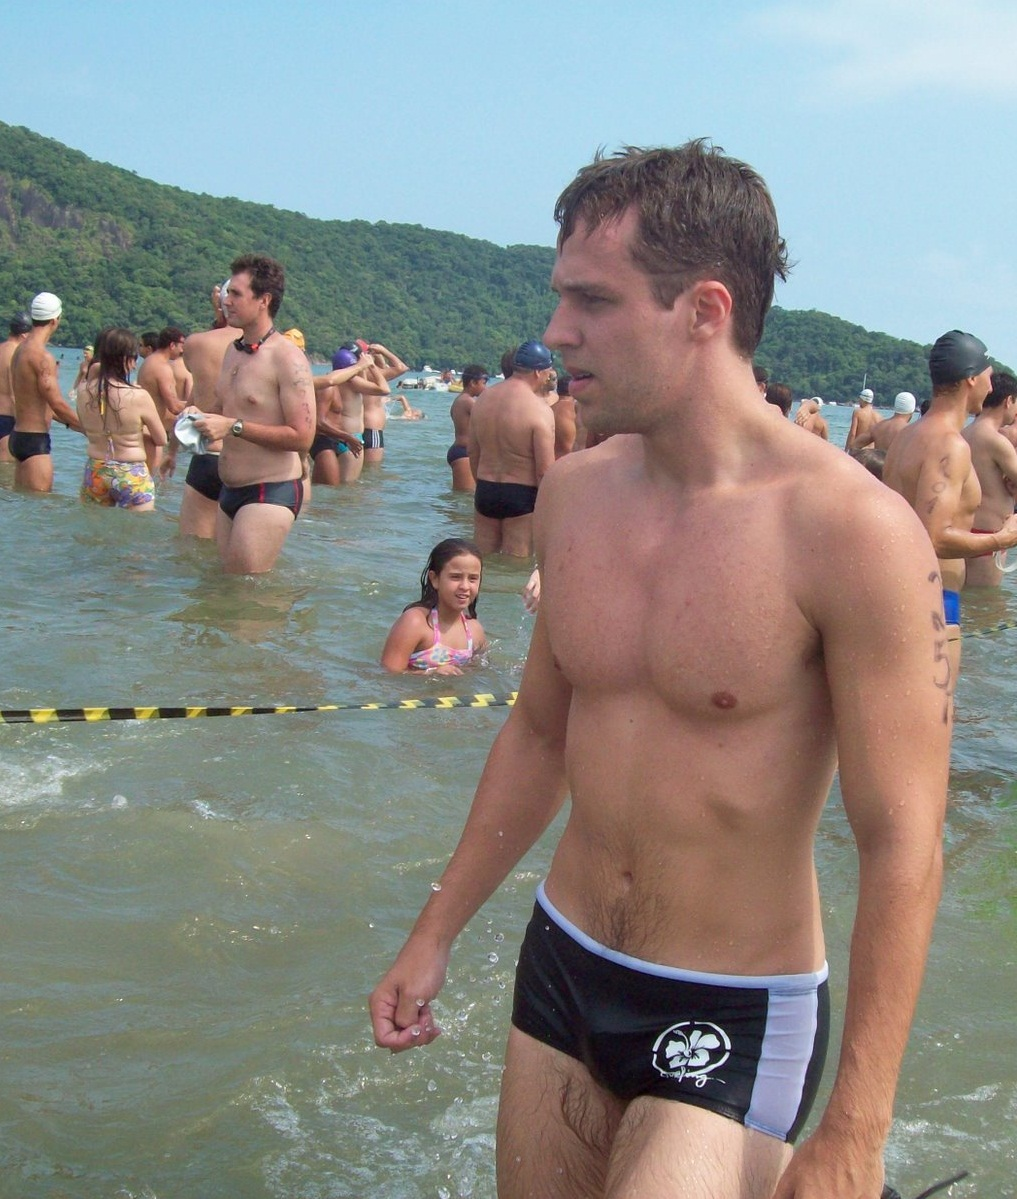 Hotties in Speedos: Swimmers, Surfers, Divers, Water Polo Players, Cyclists